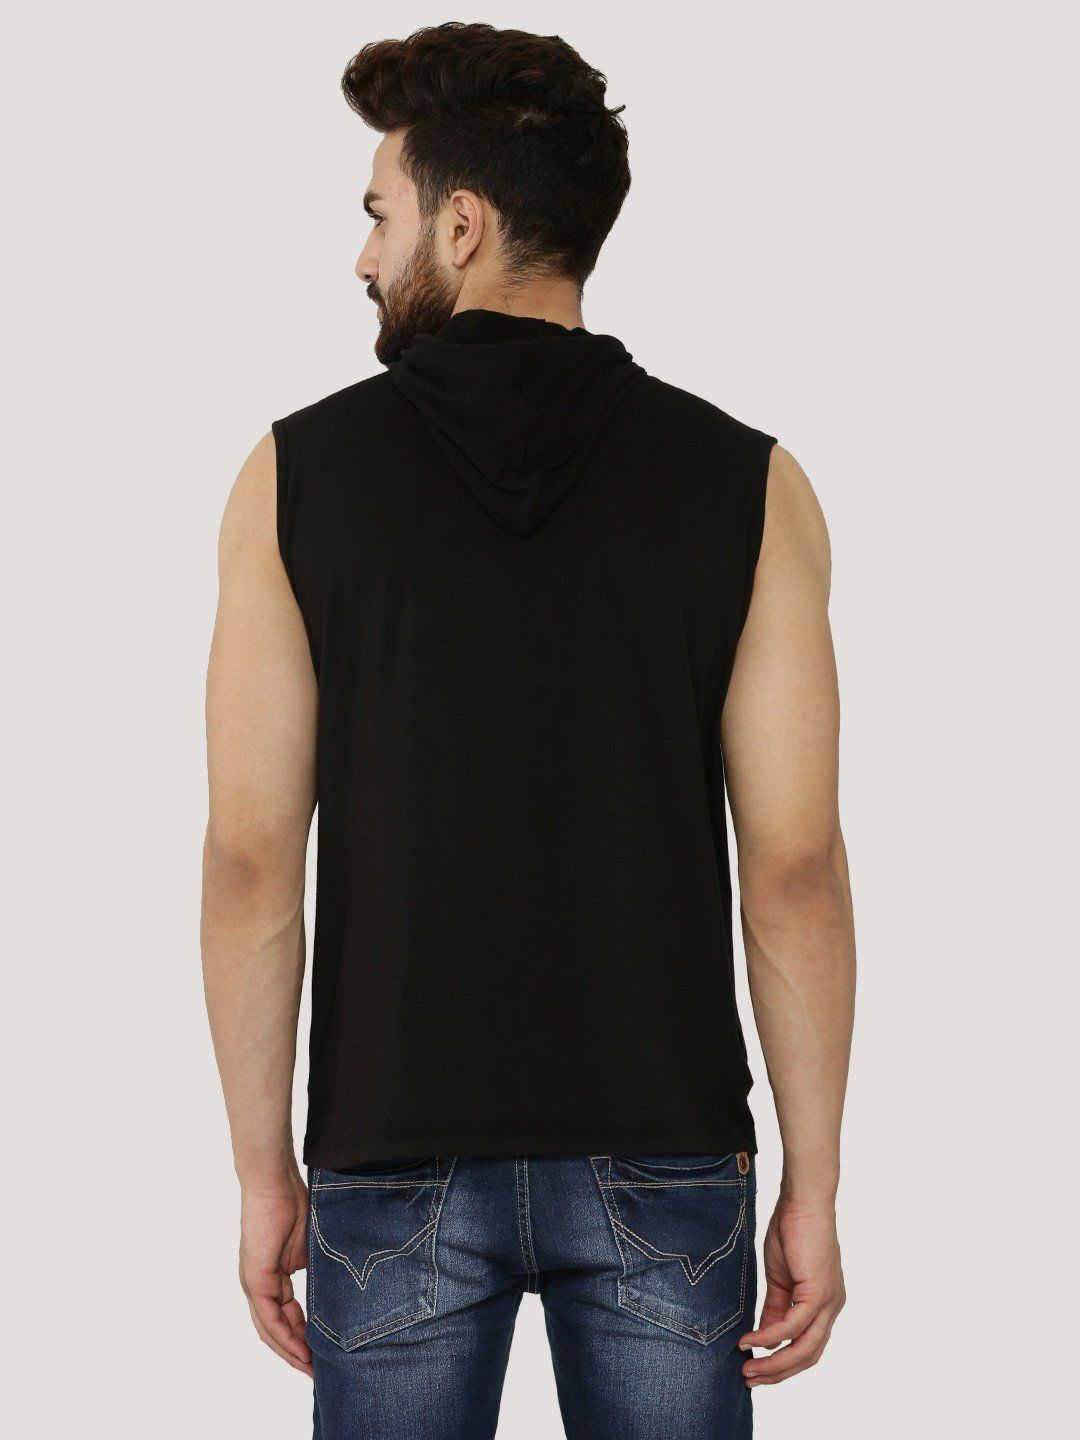 KING Black Sleeveless T-Shirt With Hood - Fighting Fame  - 2